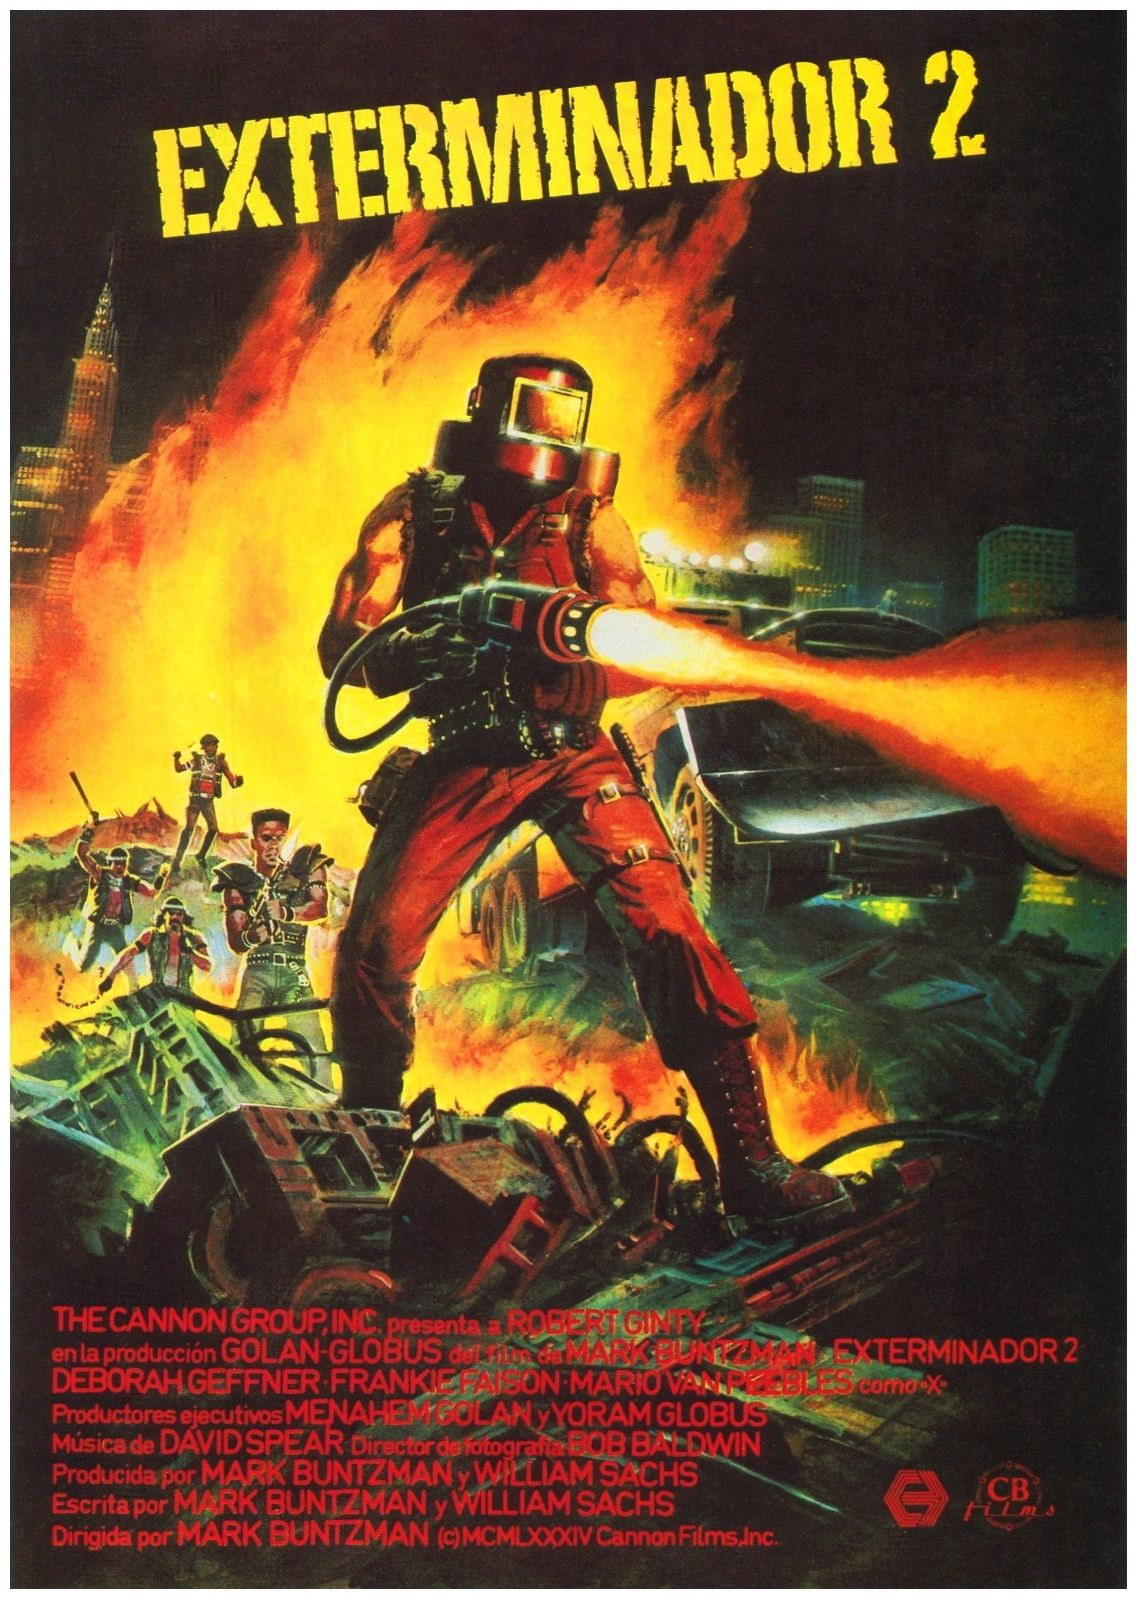 73904-Exterminator-2-Movie-1984-Thriller-Action-Wall-Print-Poster-Affiche